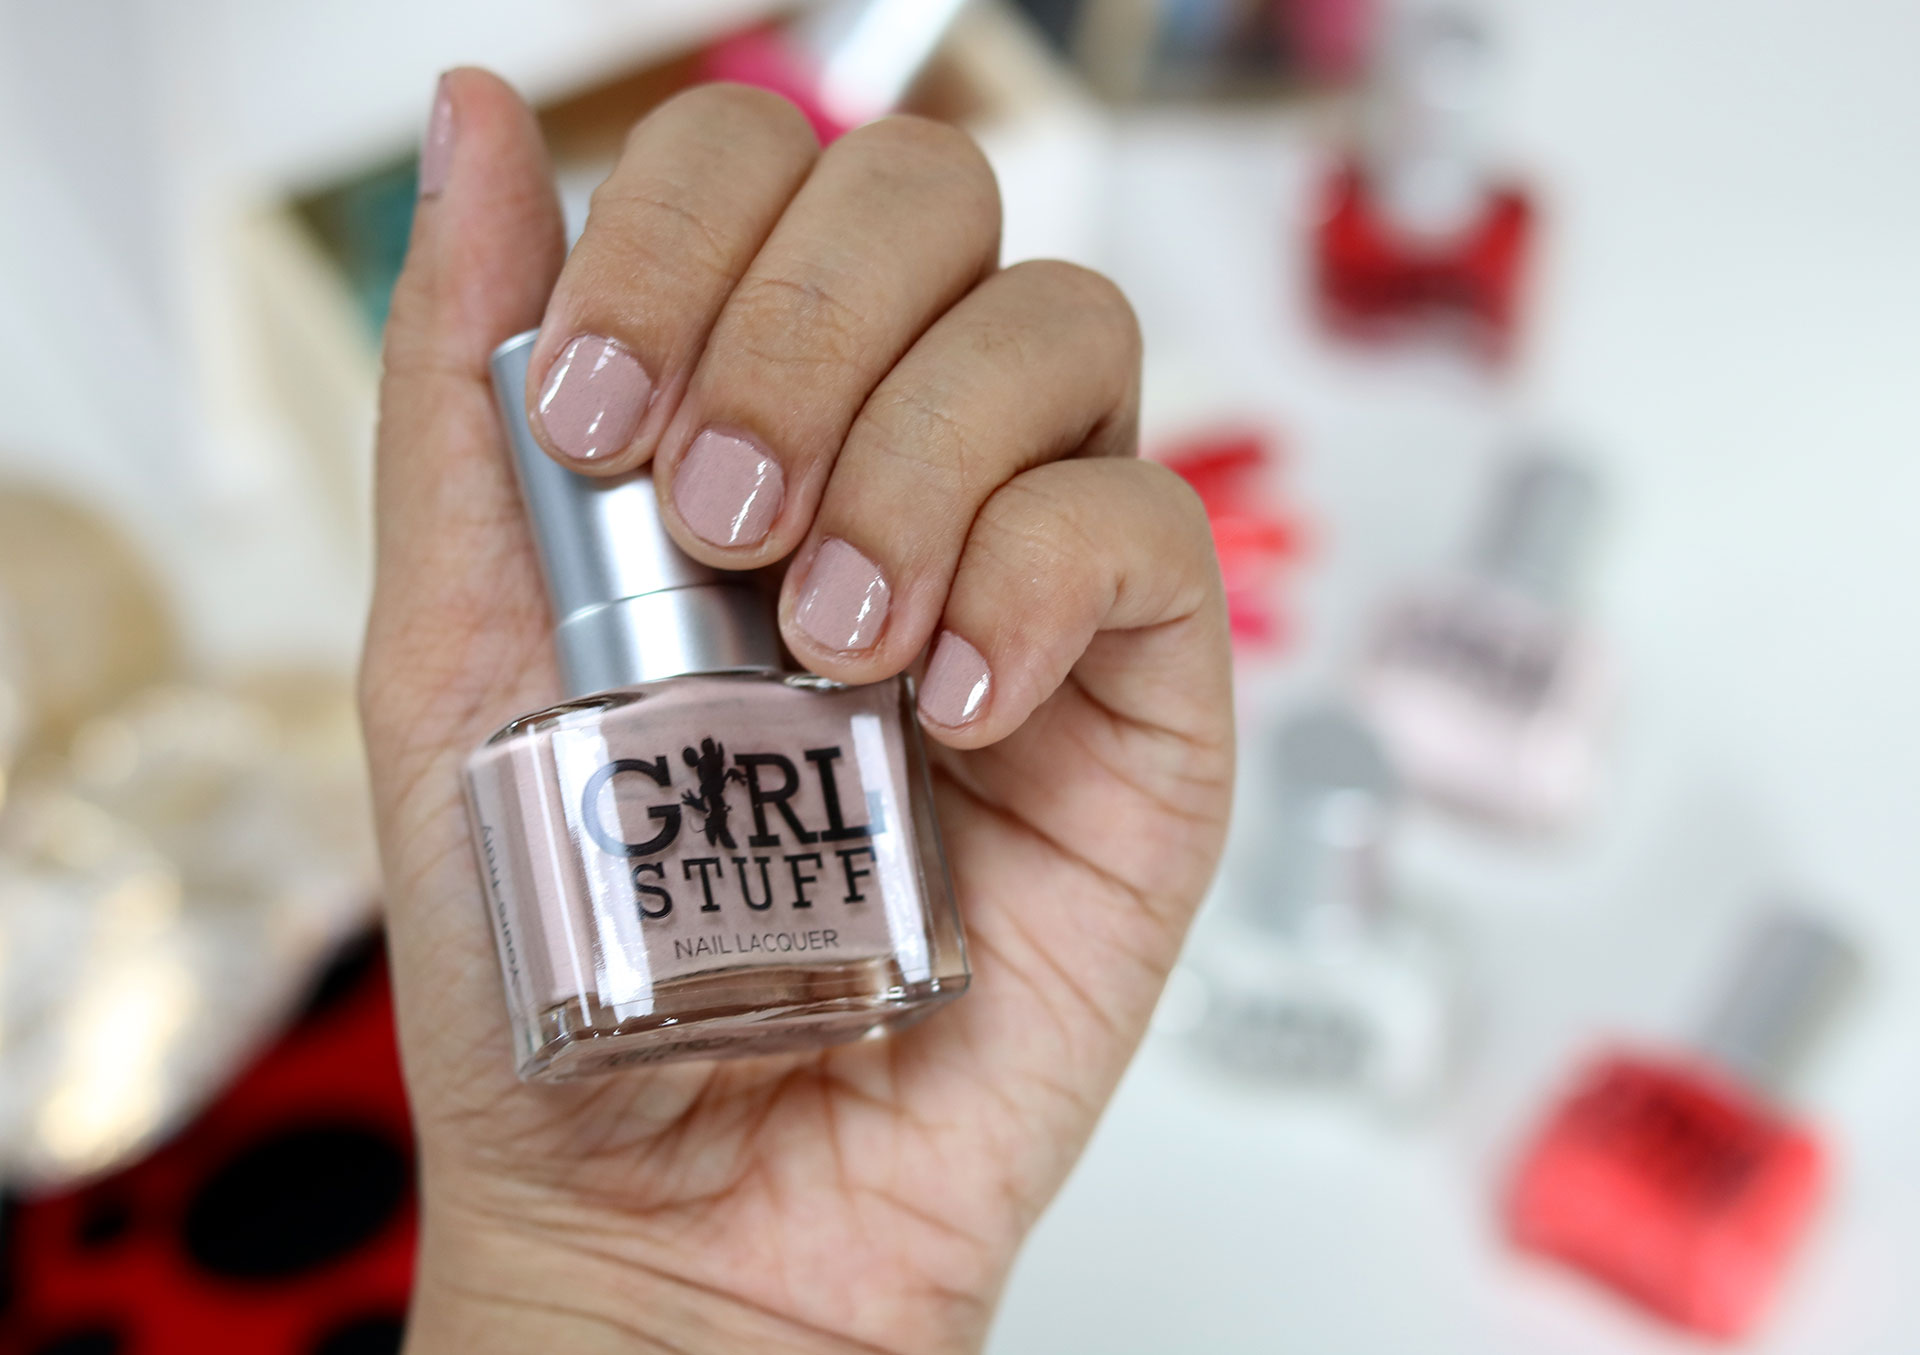 7 Girlstuff Minnie Mouse Nail Lacquers Collection Review Swatches Photos - Gen-zel She Sings Beauty